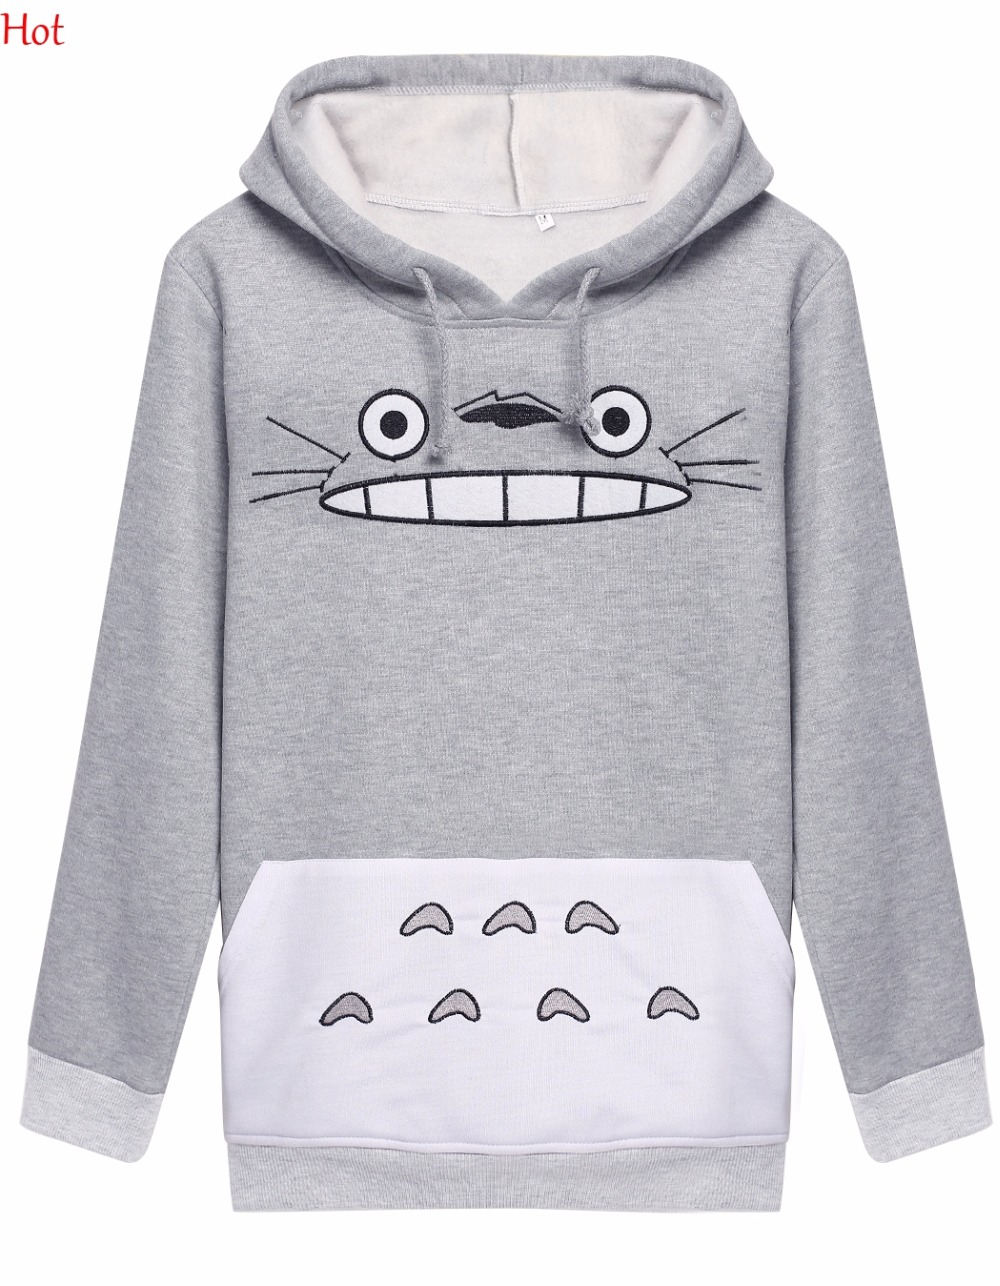 Compare Prices on Cute Girl Hoodies- Online Shopping/Buy Low Price ...